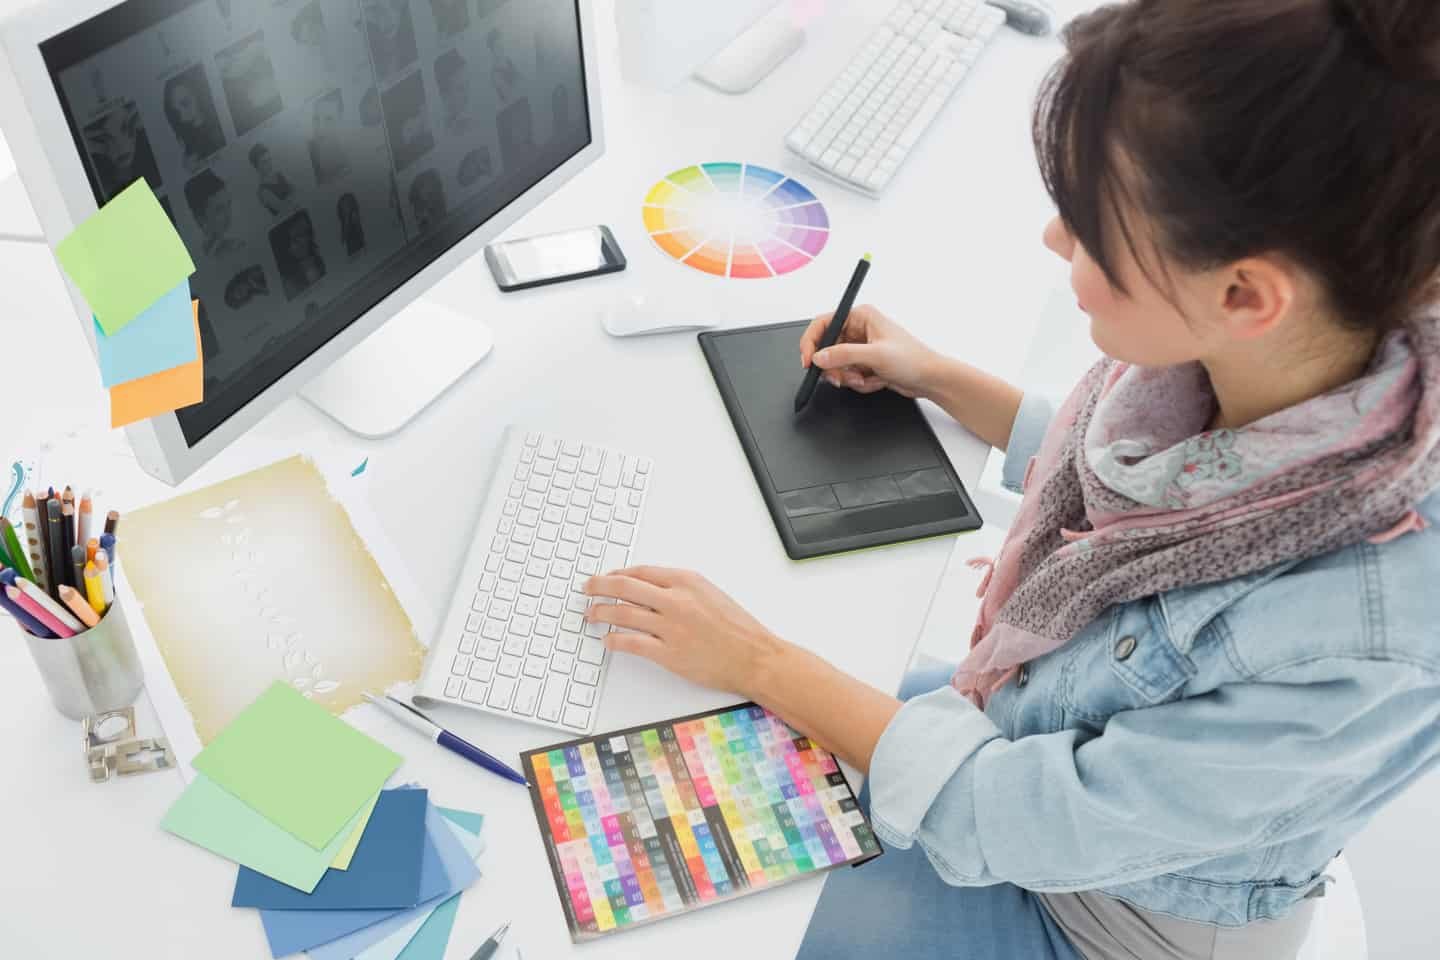 woman working on graphic designs